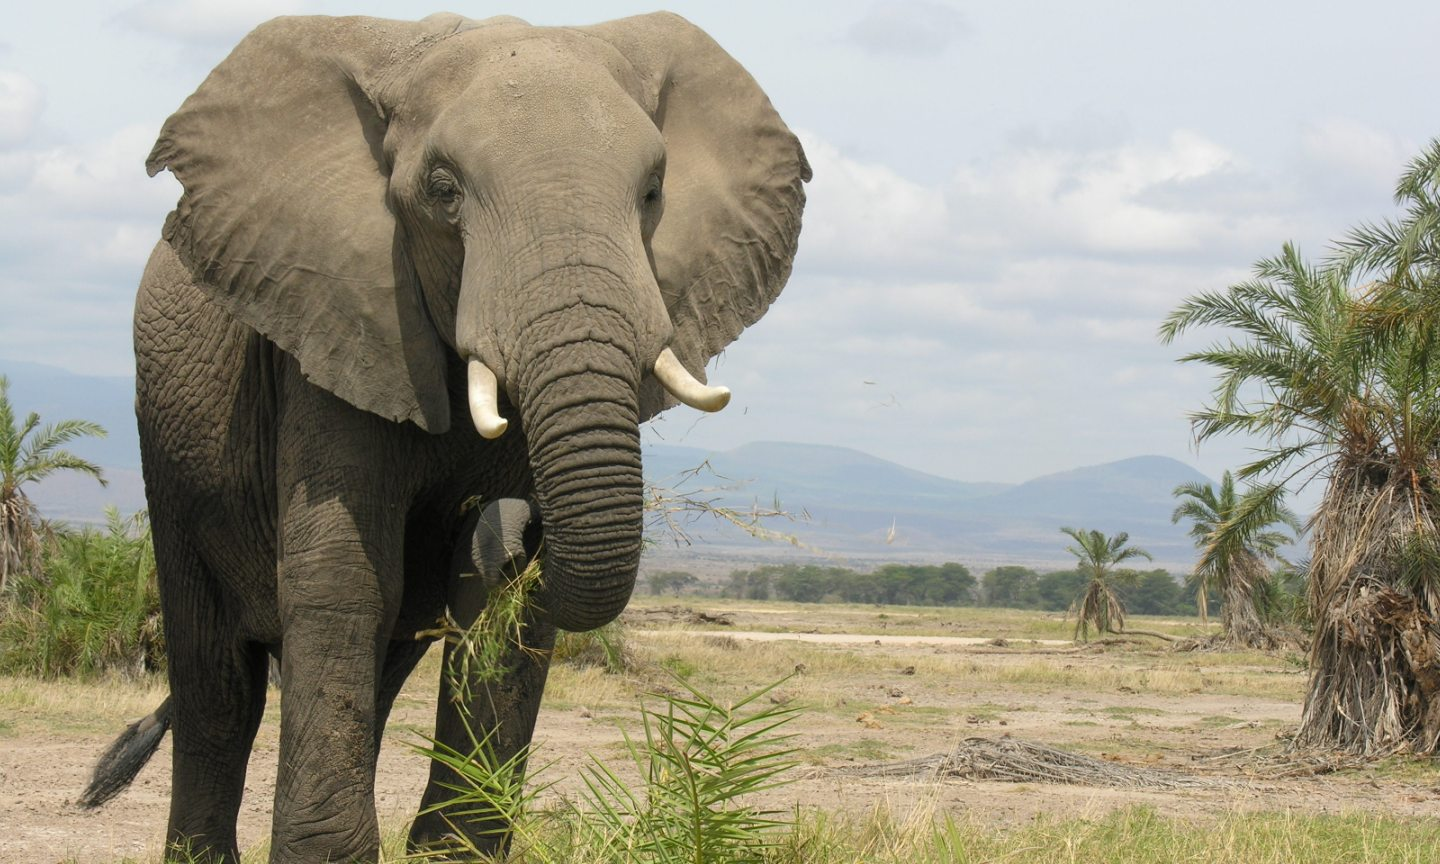 Take Action: BEAD the Change - Jewelry Making to Benefit Elephants